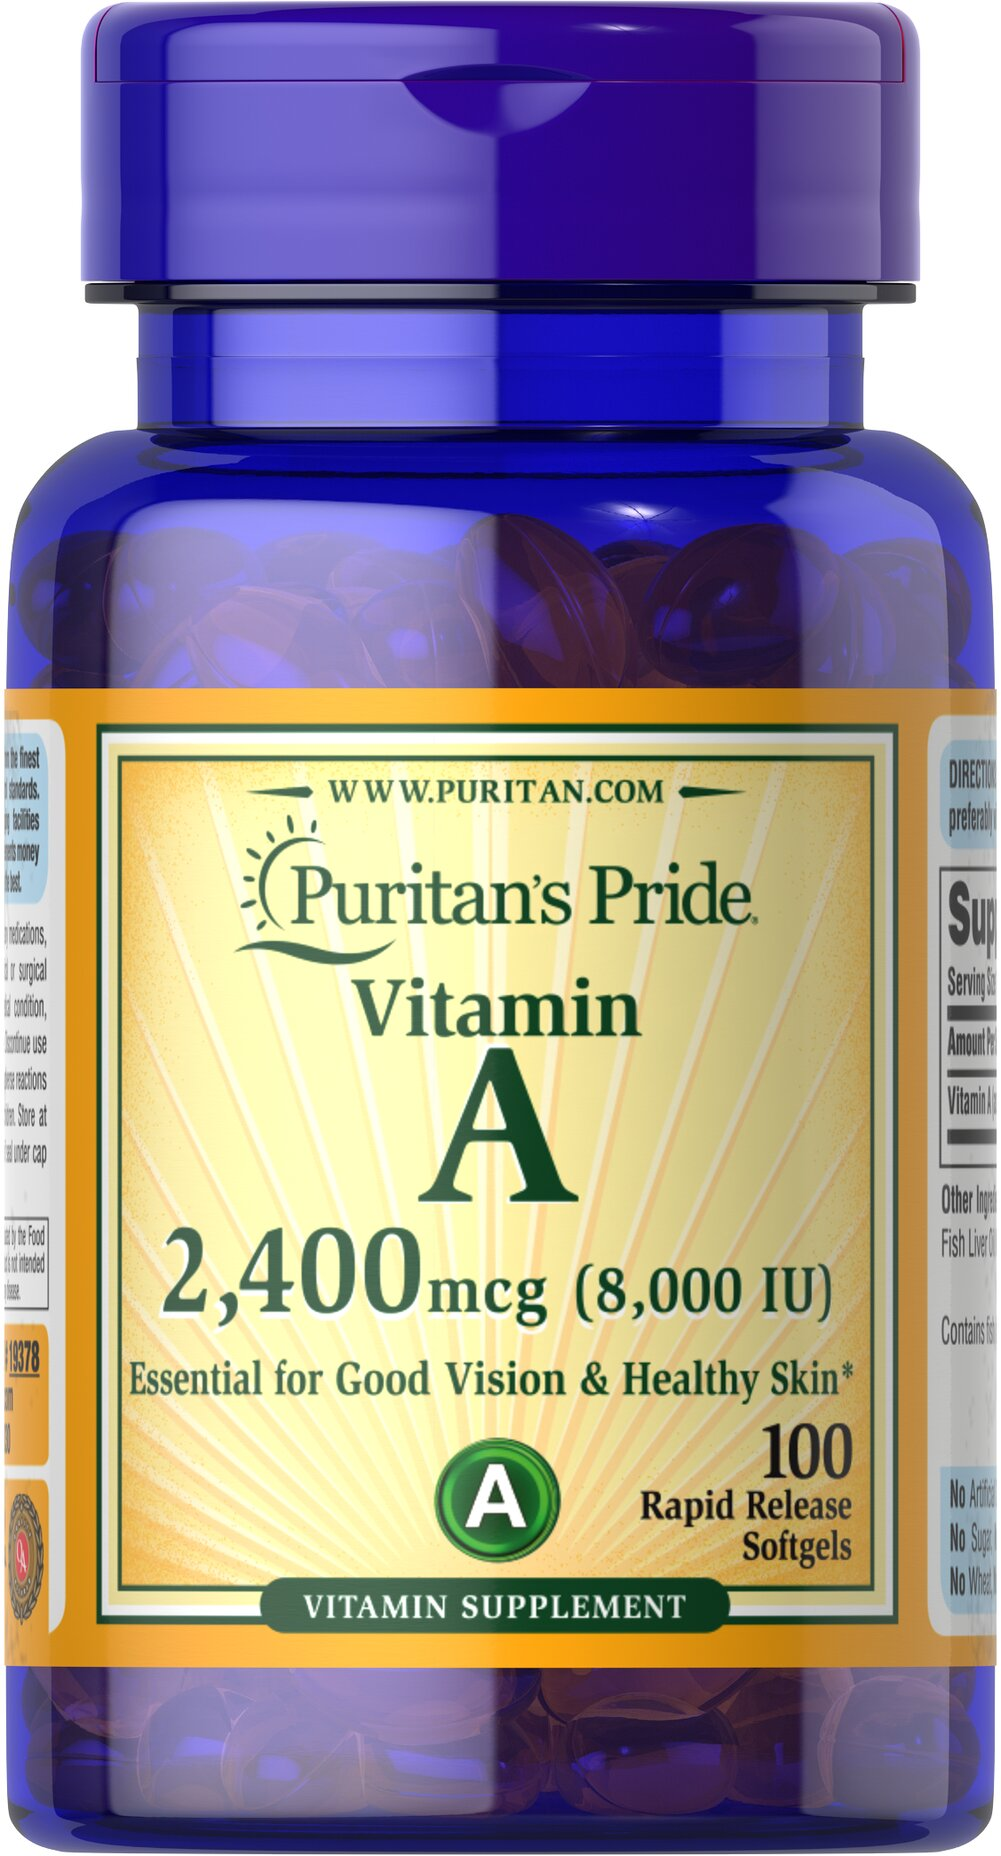 Vitamin A 8,000 IU (2,400 mcg) Thumbnail Alternate Bottle View